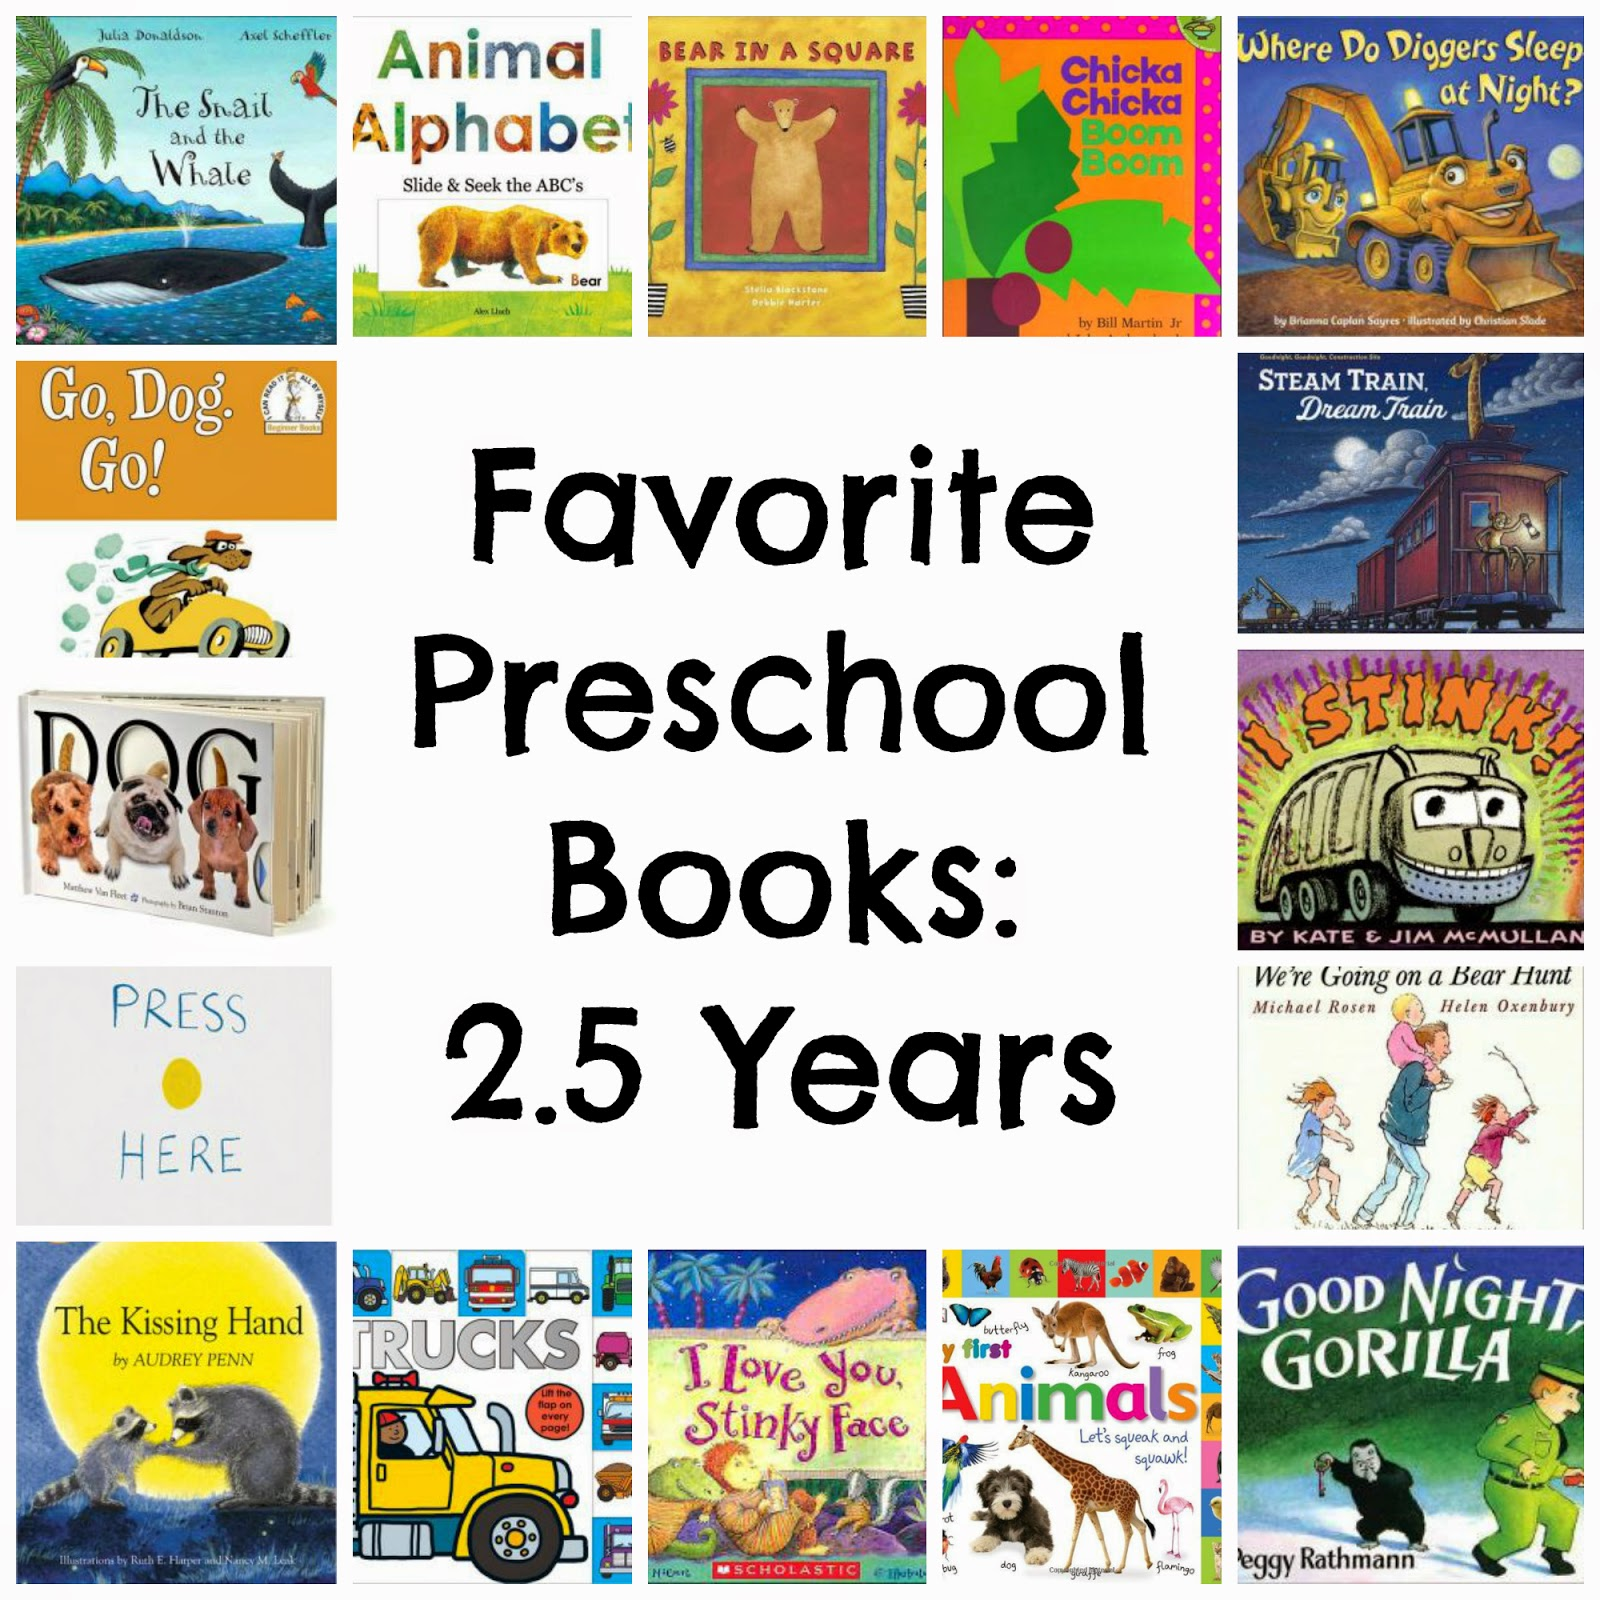 Running From The Law Favorite Books For Preschoolers